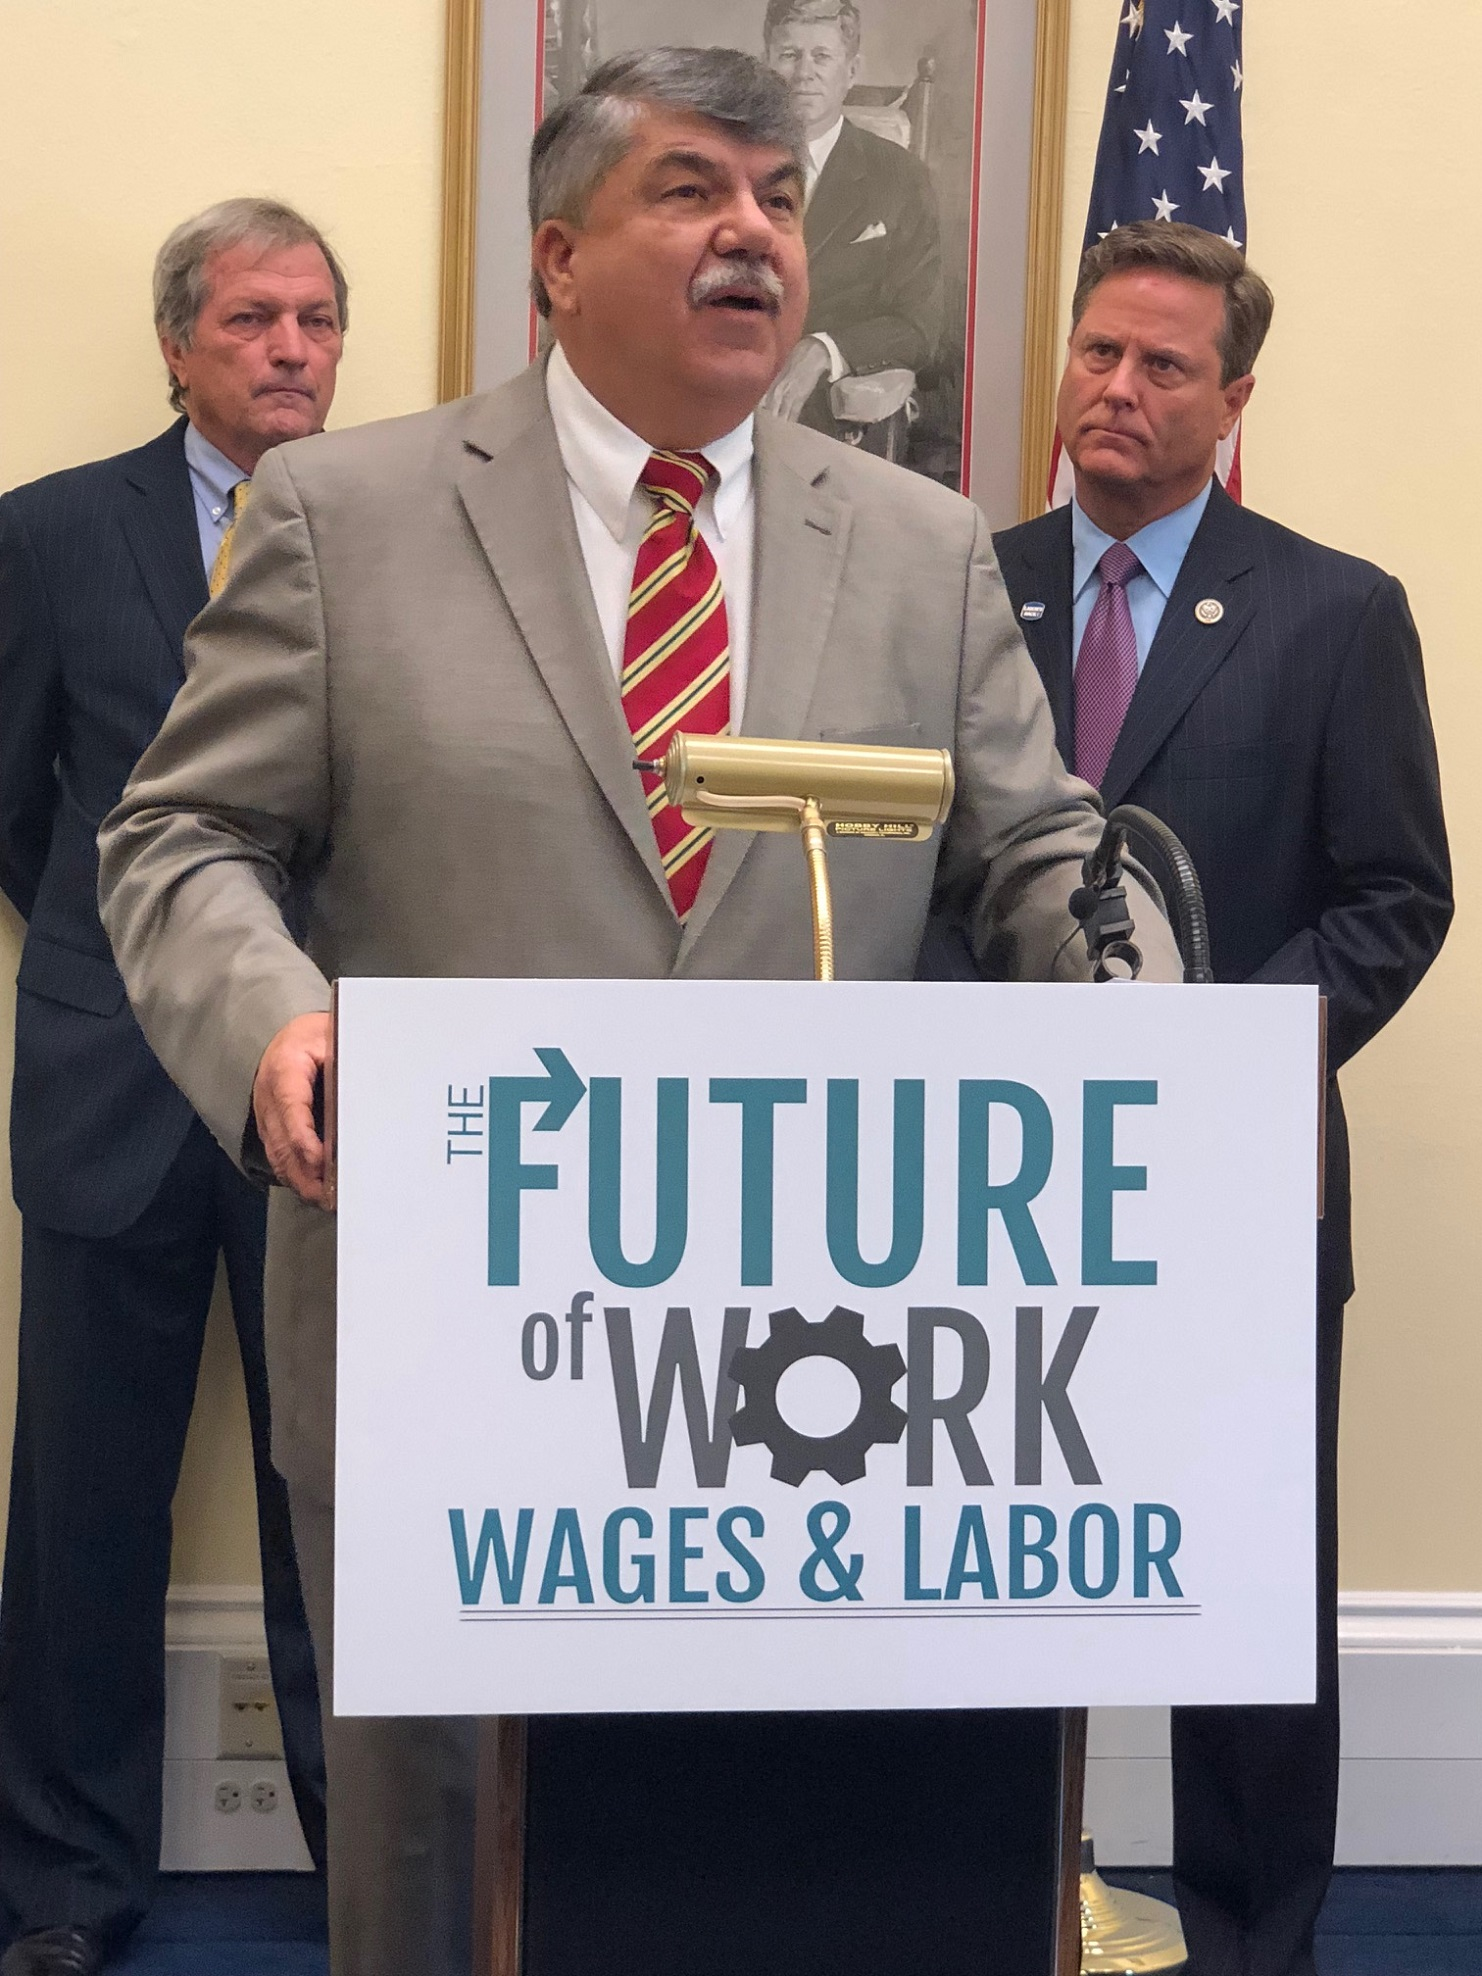 President Trumka addresses a press conference on the future of work.